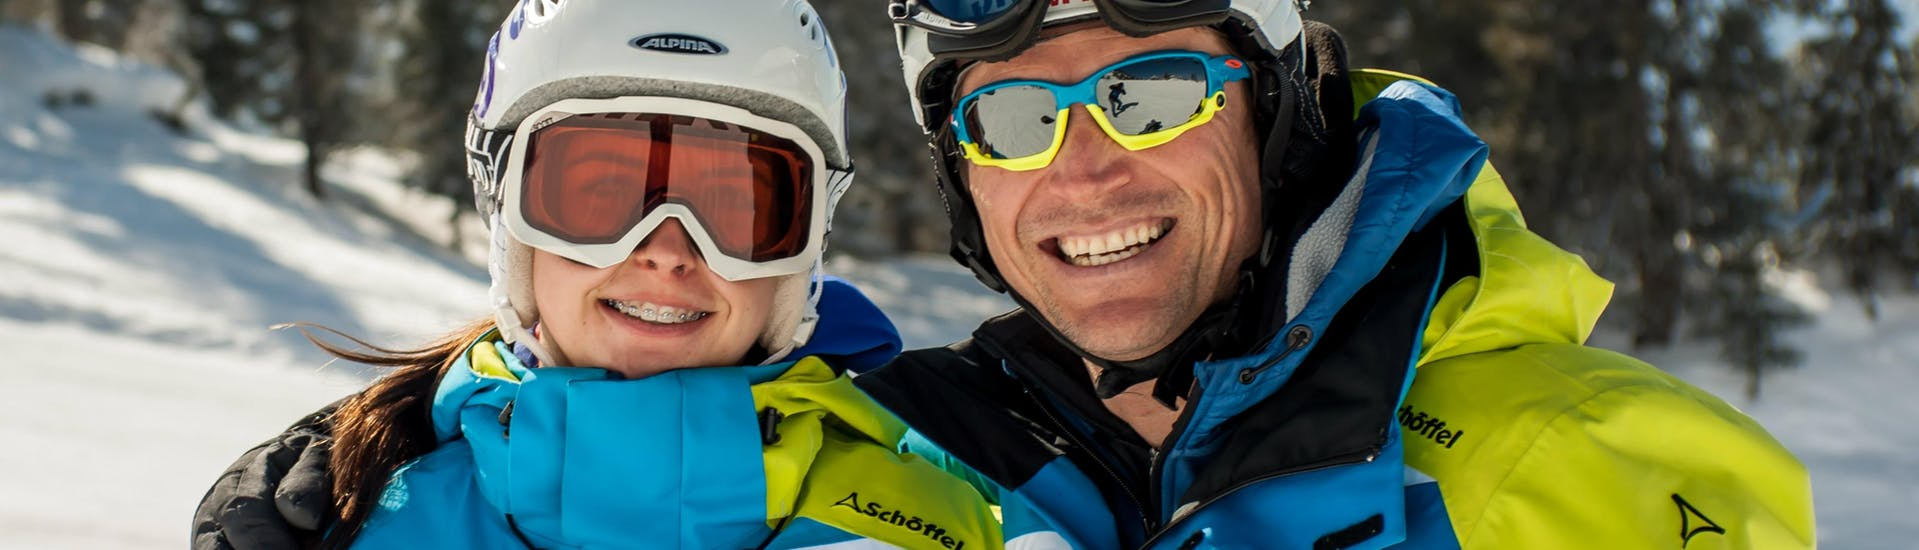 Private Snowboarding Lessons for Kids & Adults of All Levels avec Skischool MALI / MALISPORT Oetz - Hero image